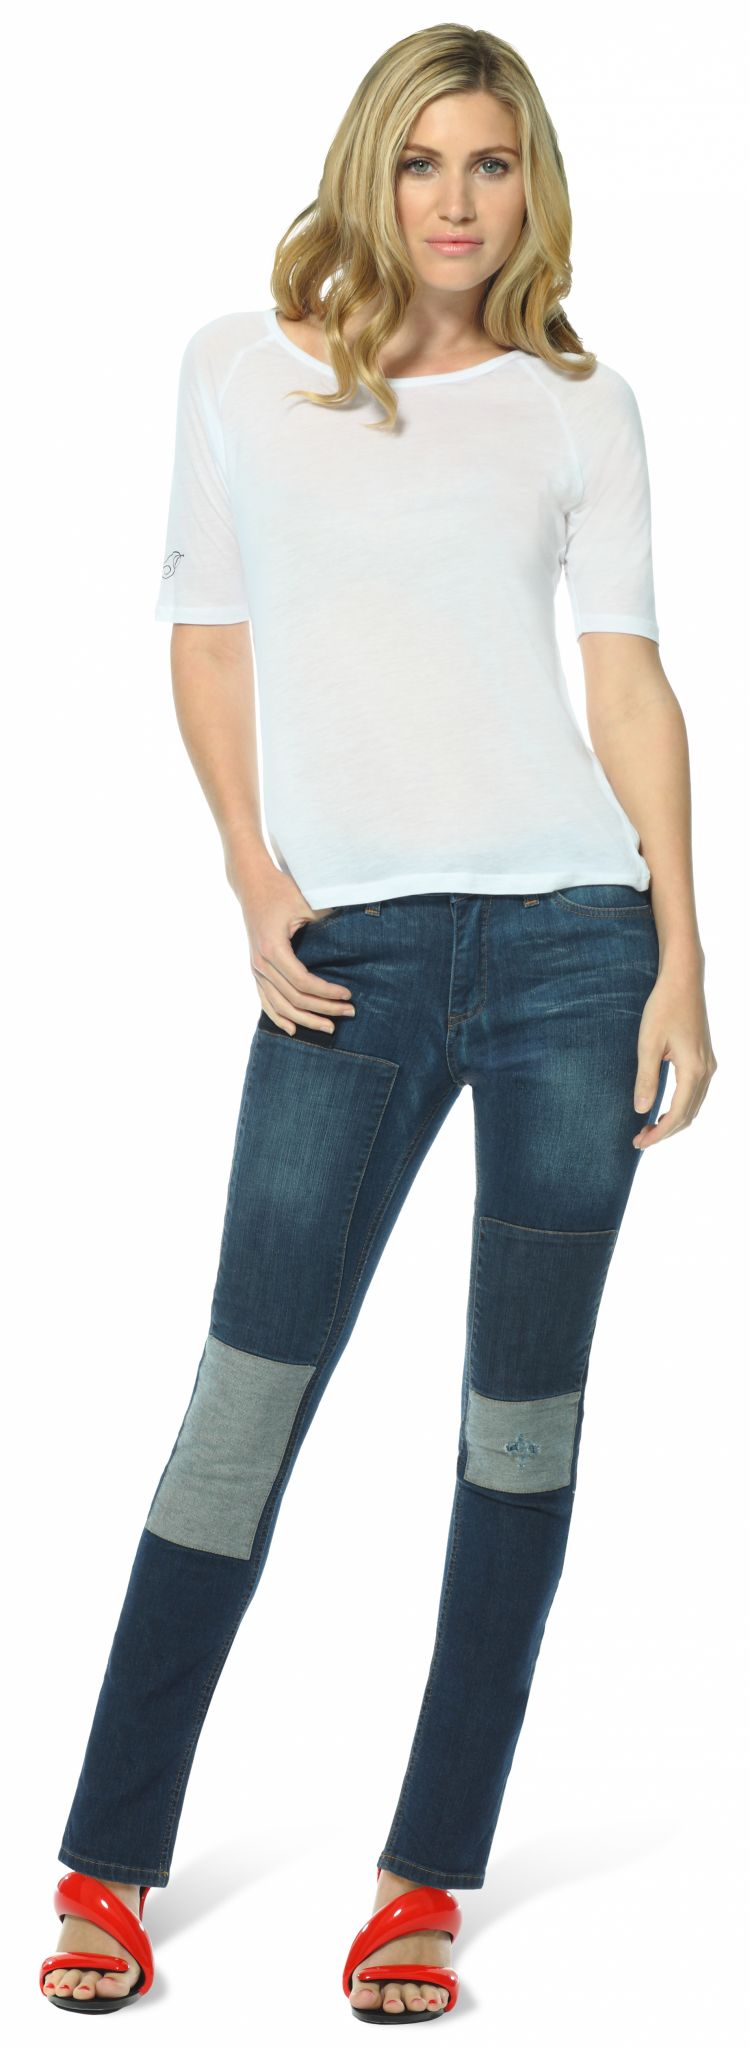 womens patch skinny jeans